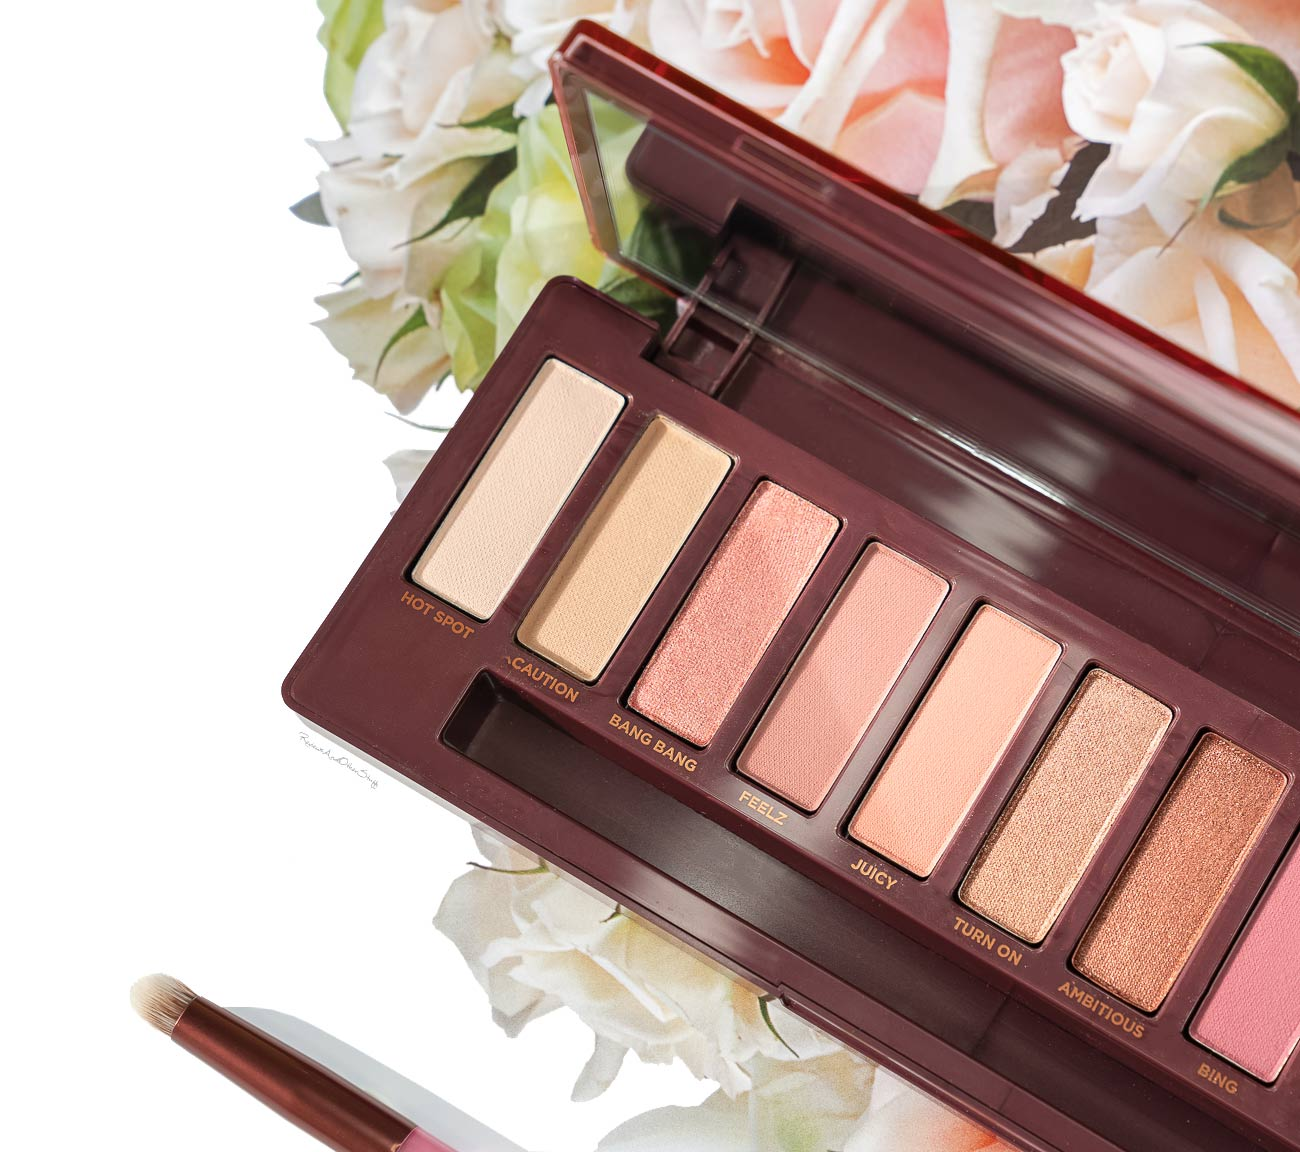 Bada-Bing! The Urban Decay Naked Cherry Collection Is Out